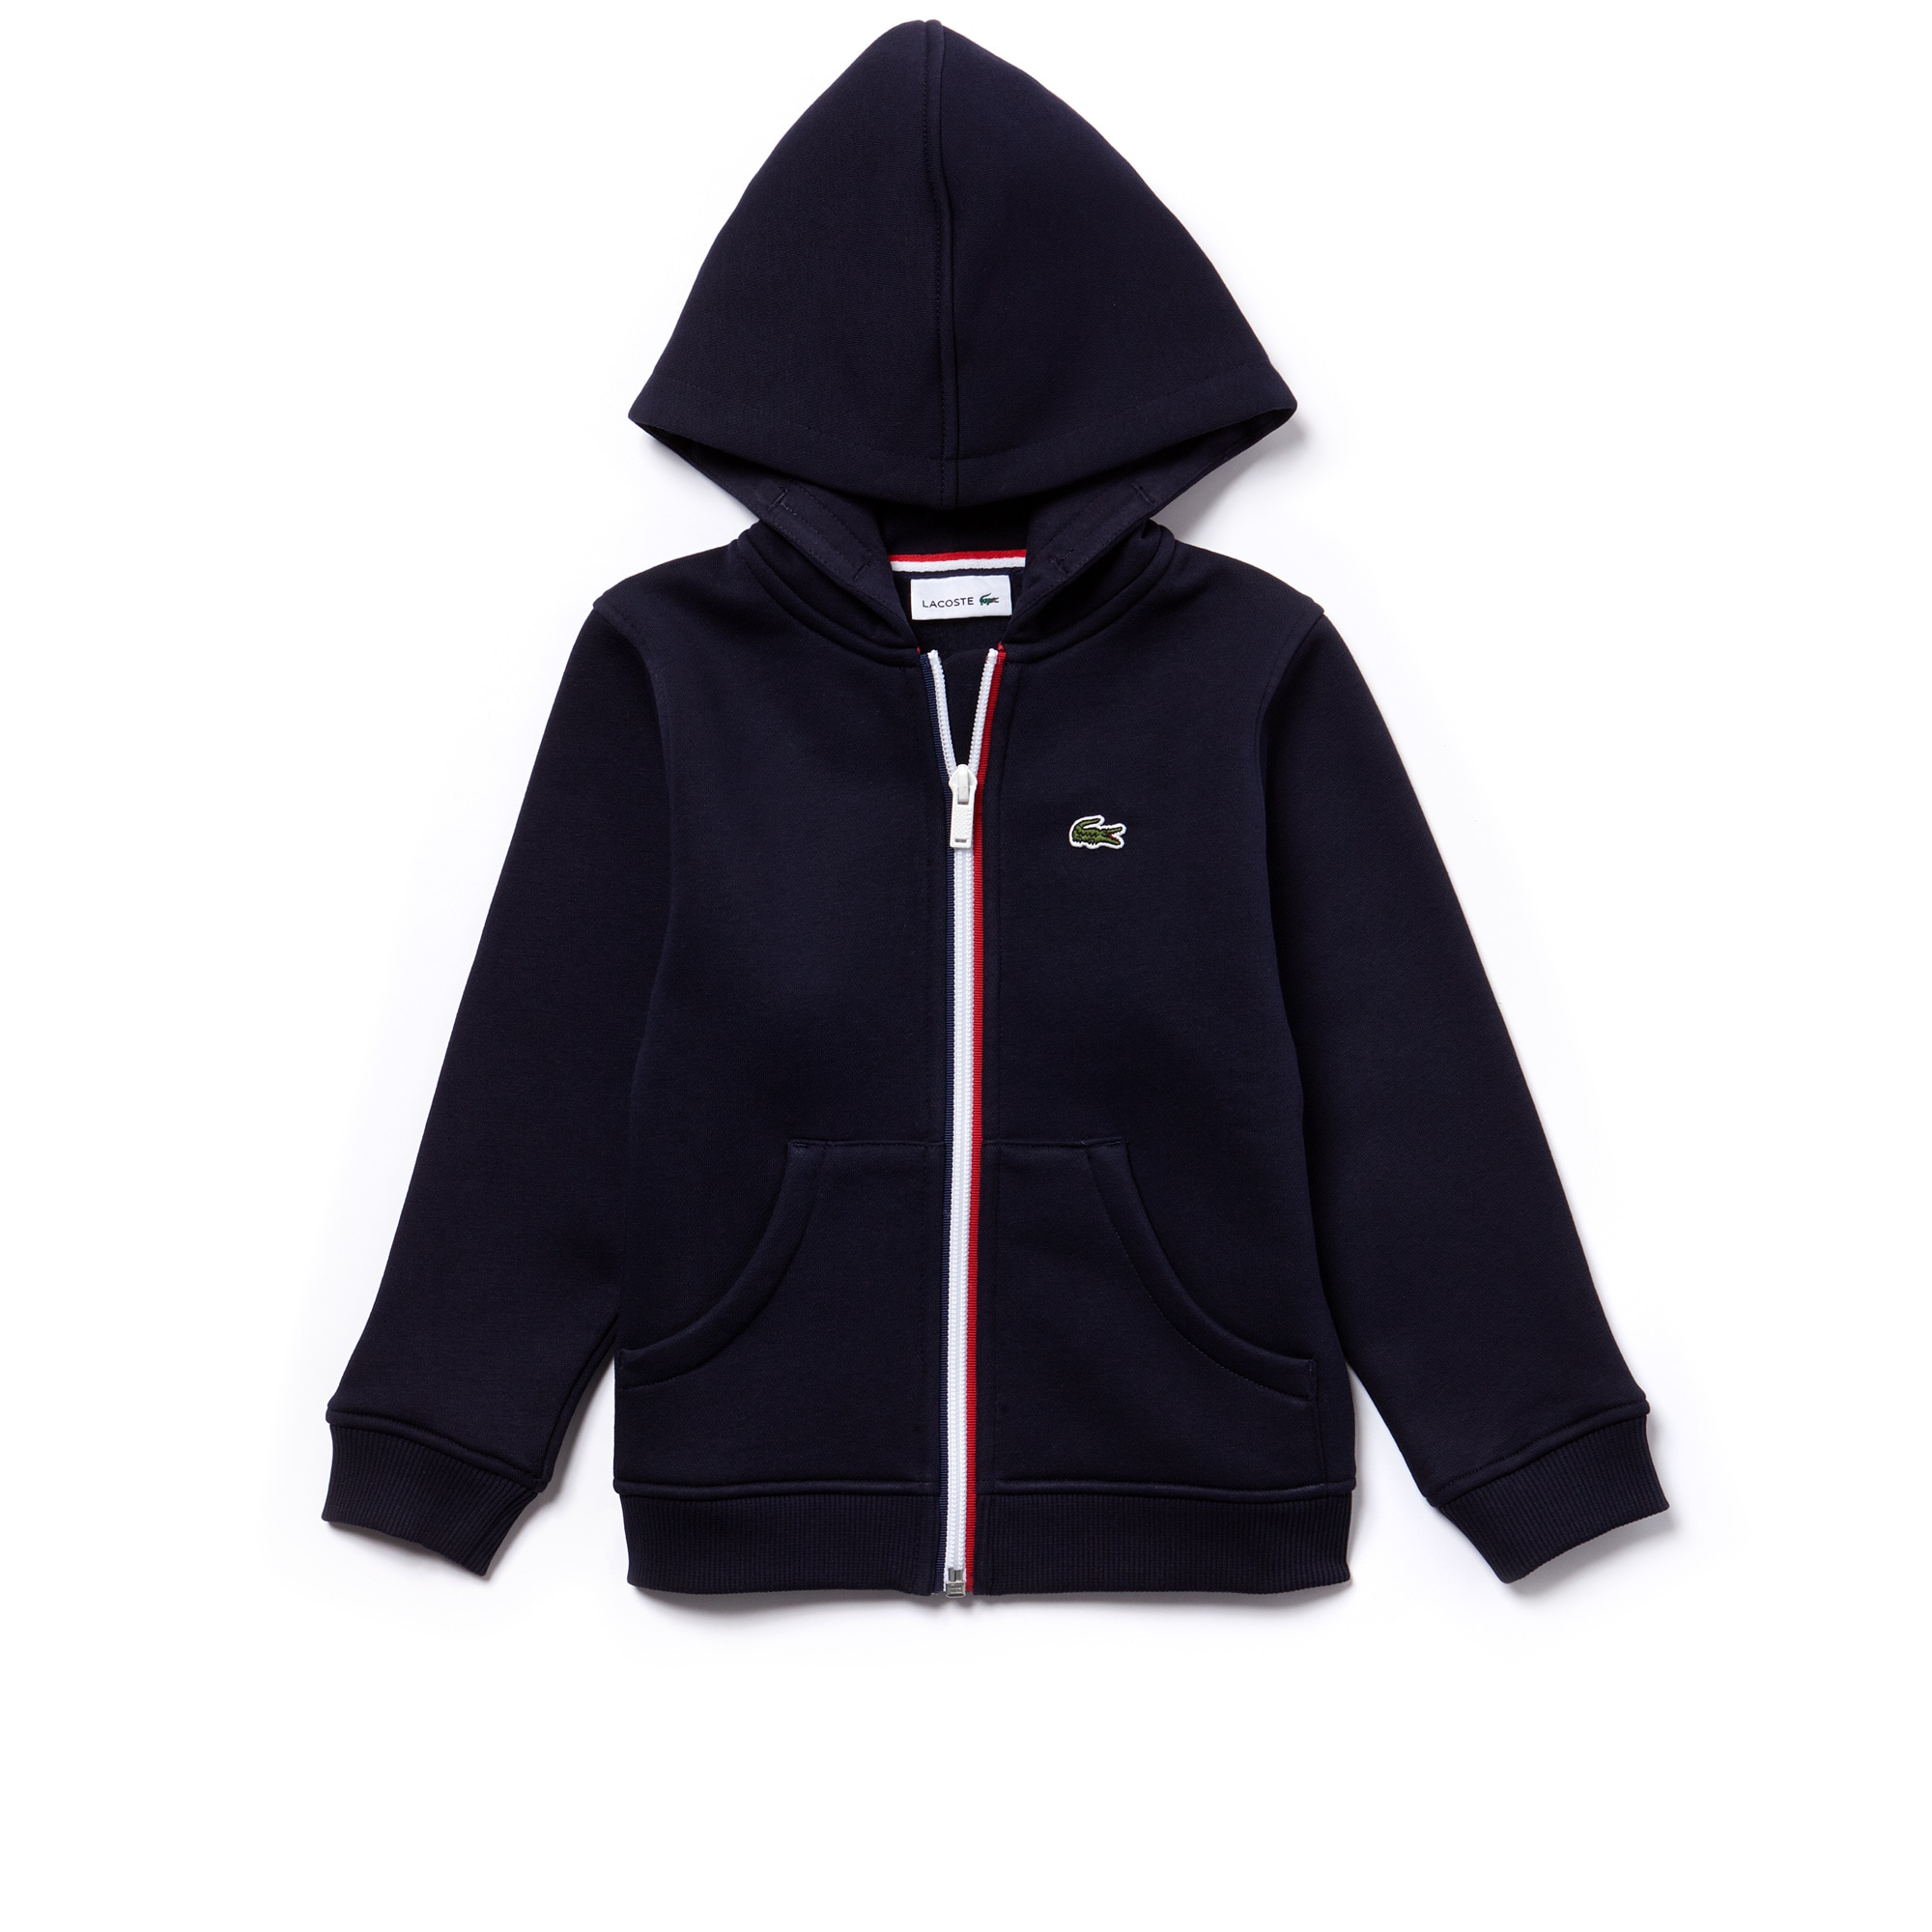 Kid's Fleece Zip-Up Hooded Sweatshirt